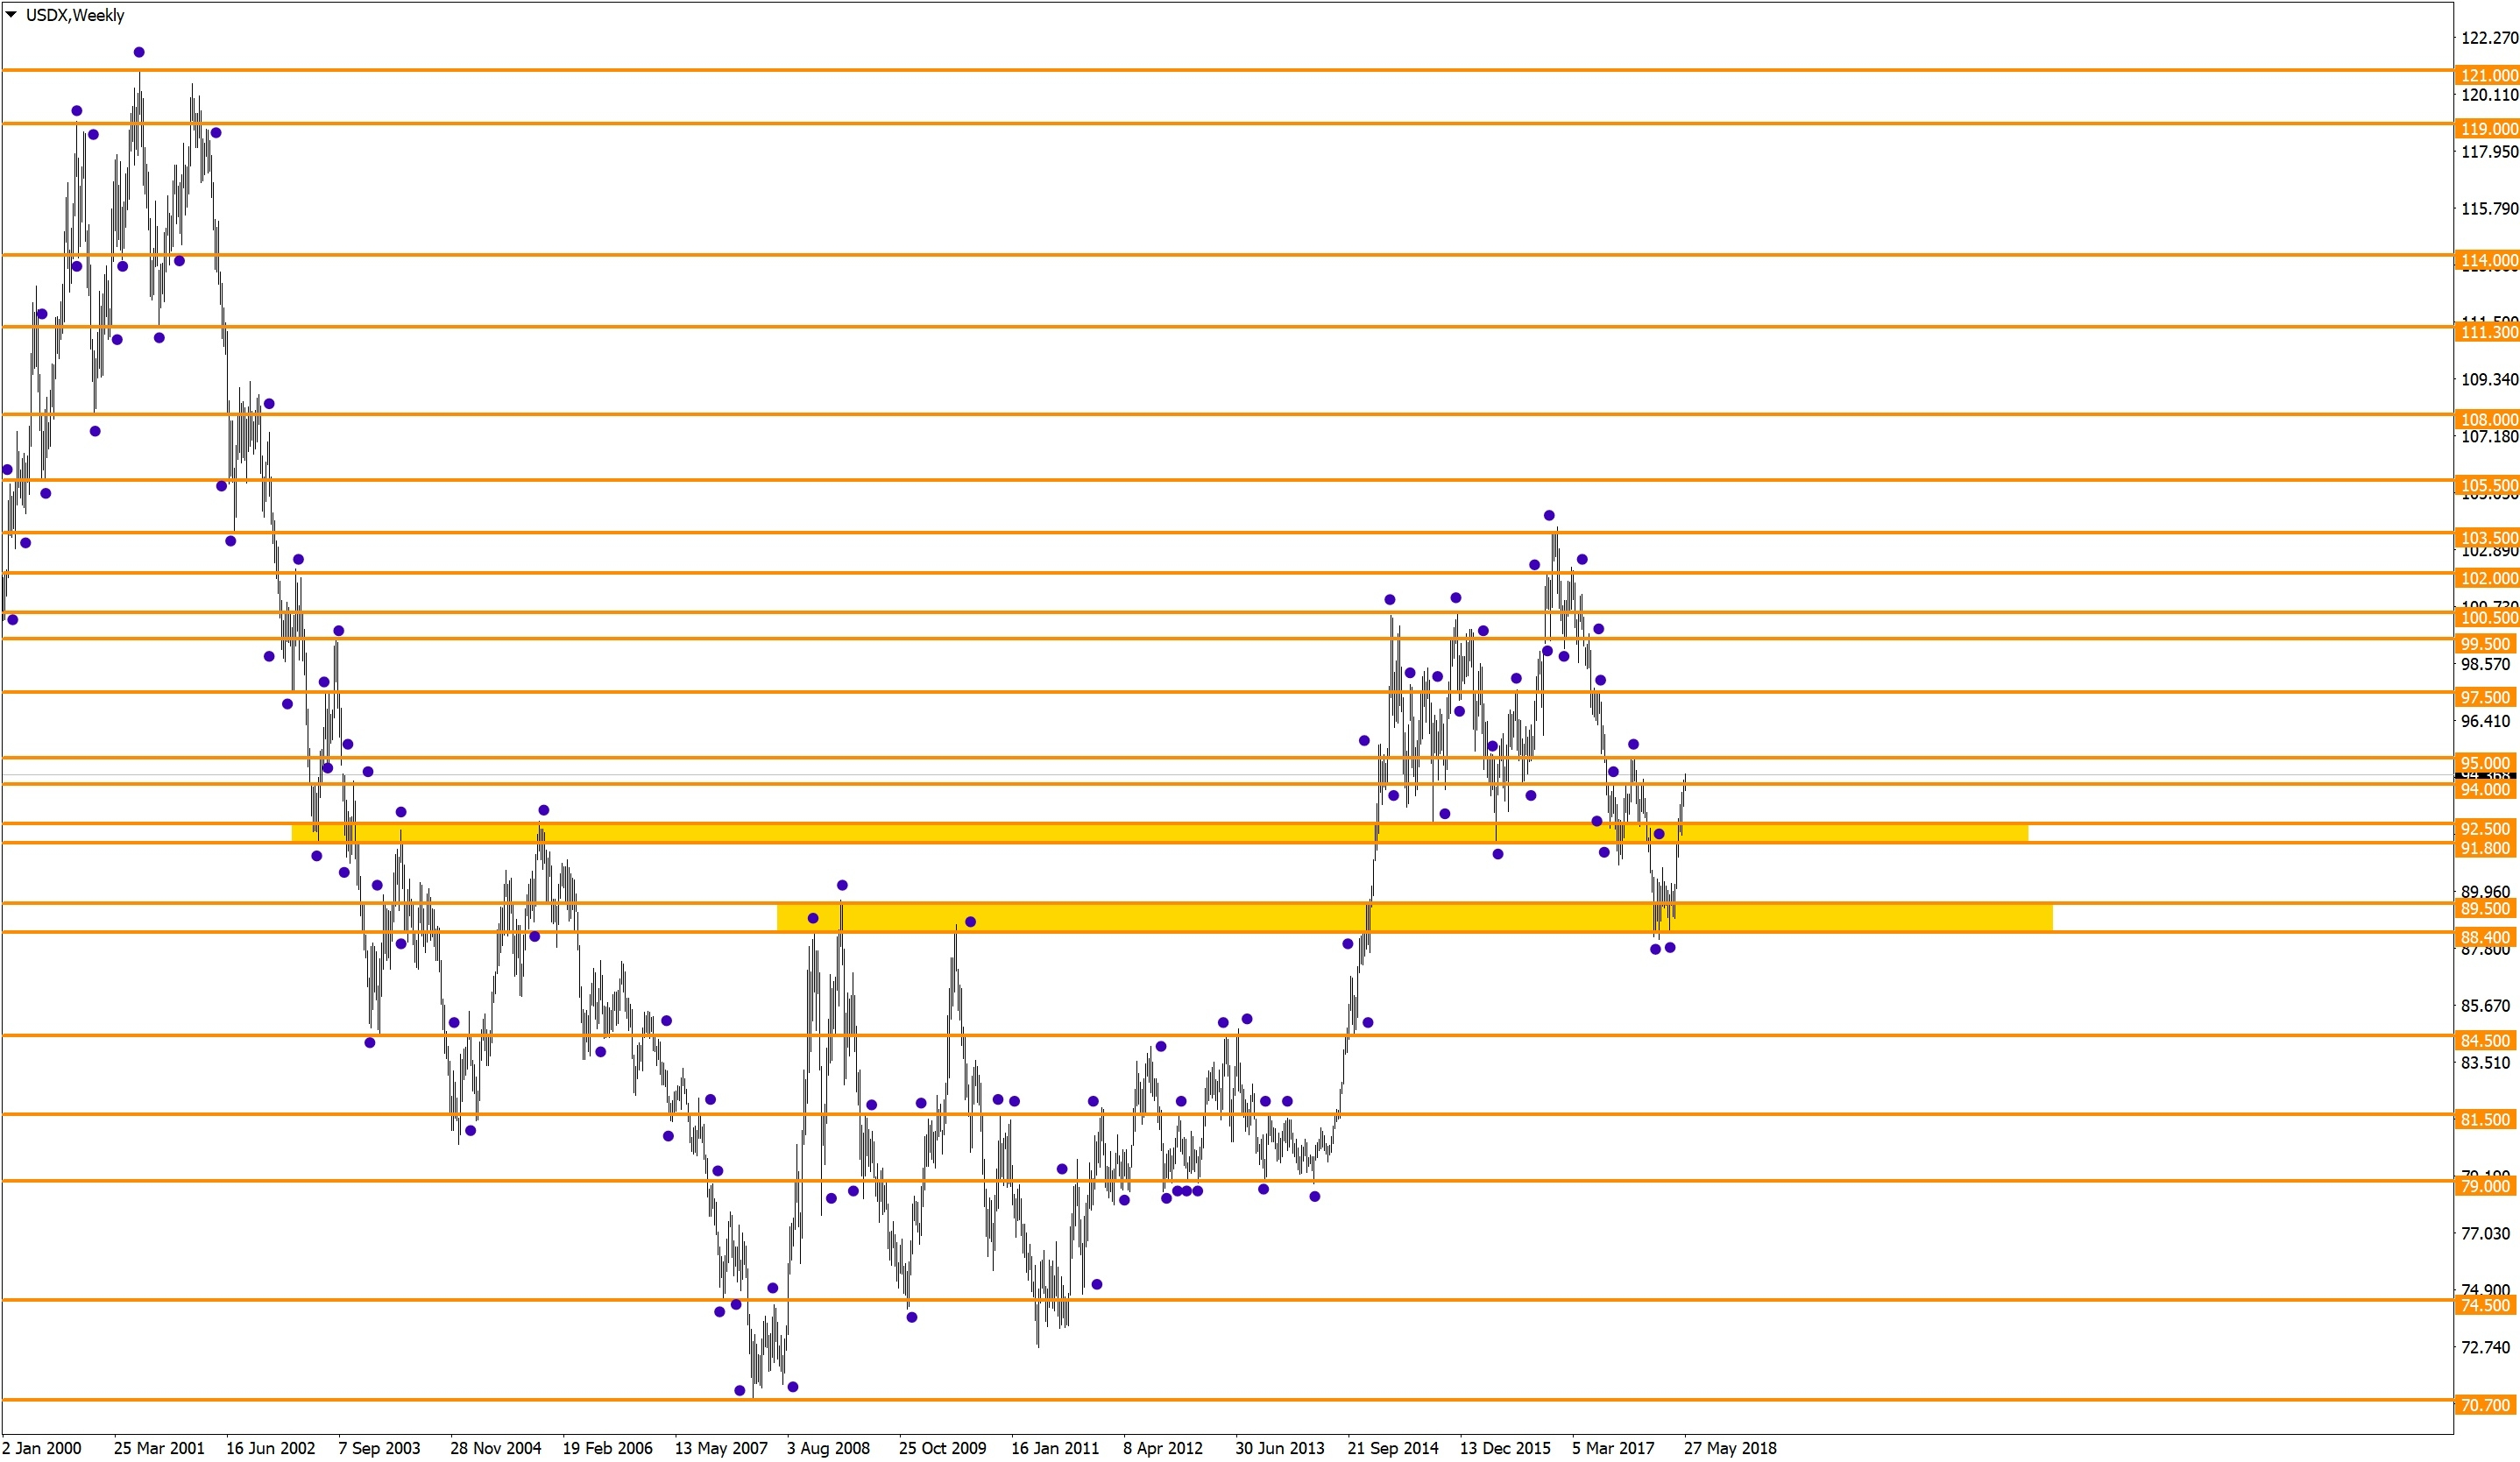 Long-term levels of the US dollar index (USDX)